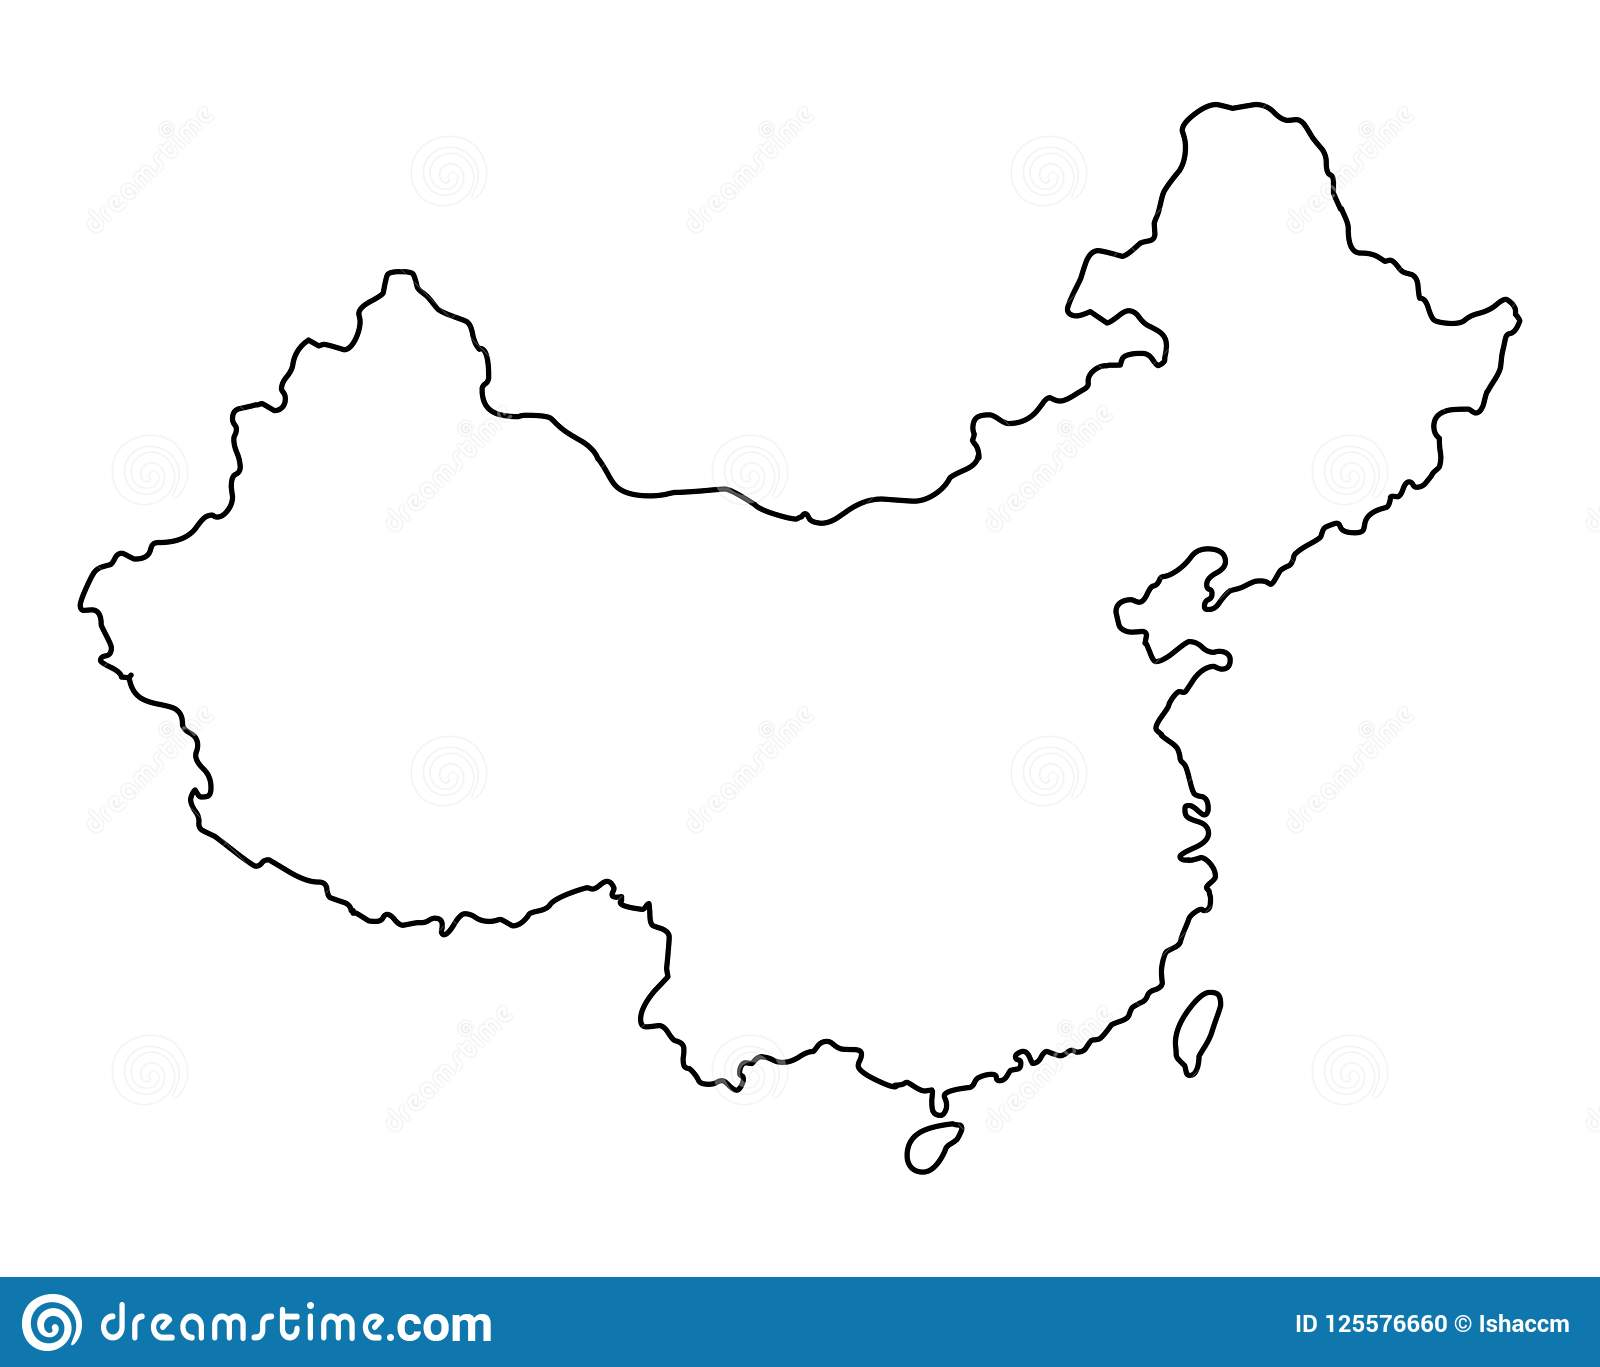 China Outline Map Vector Illustration Stock Vector Illustration Of